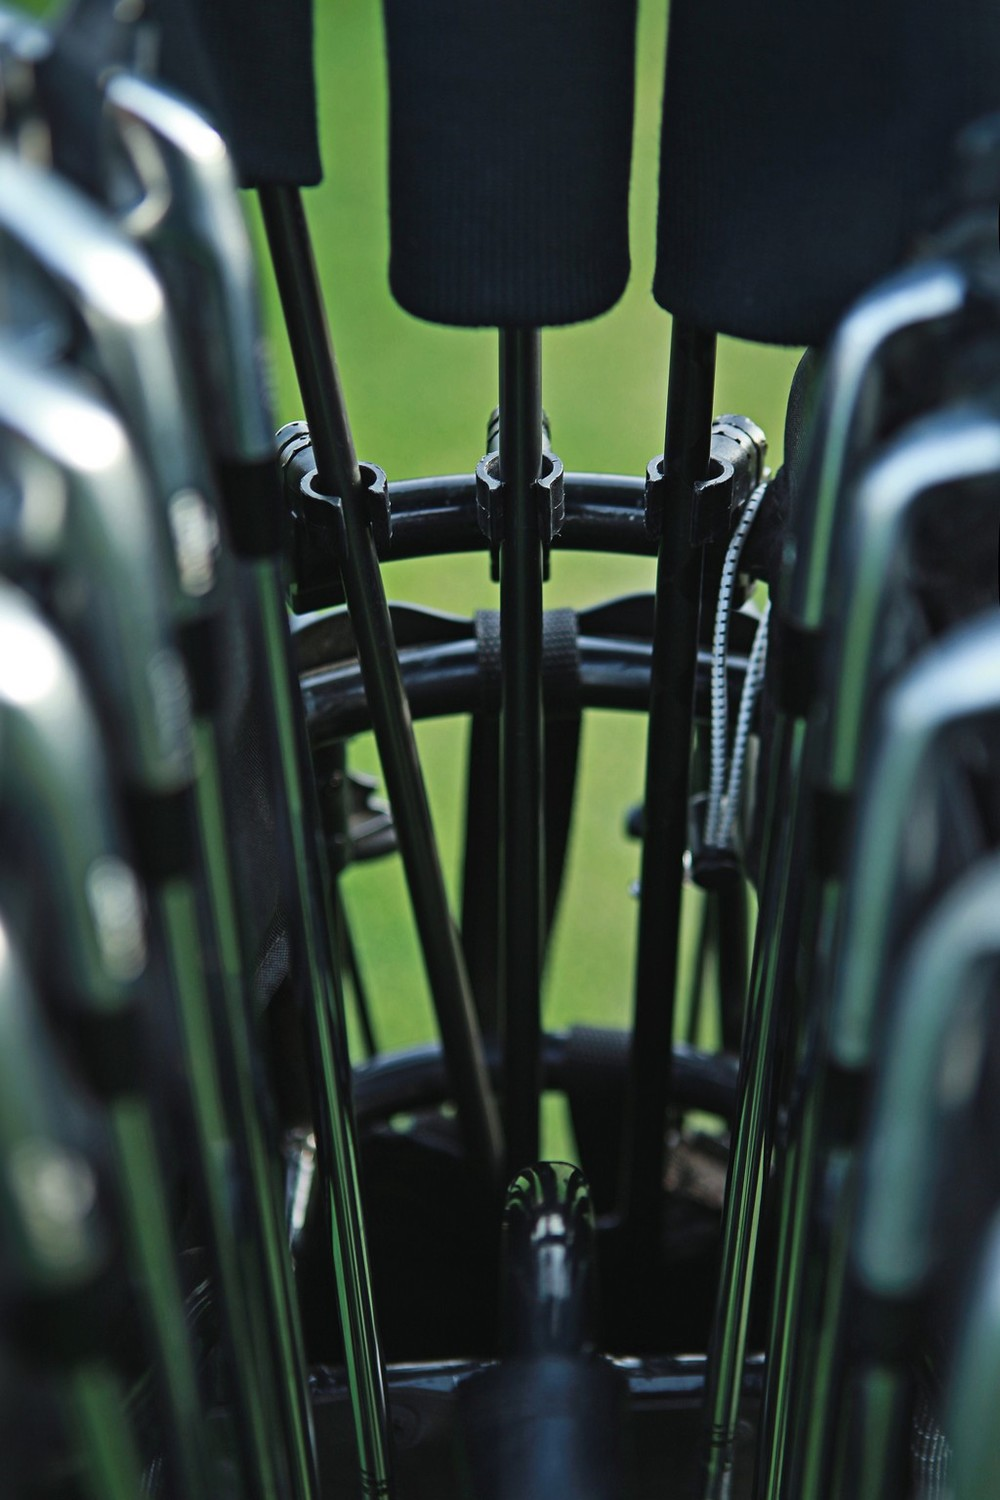 SHAFT CLIPS - Keeps woods separated  Eliminates scratches on graphite shafts